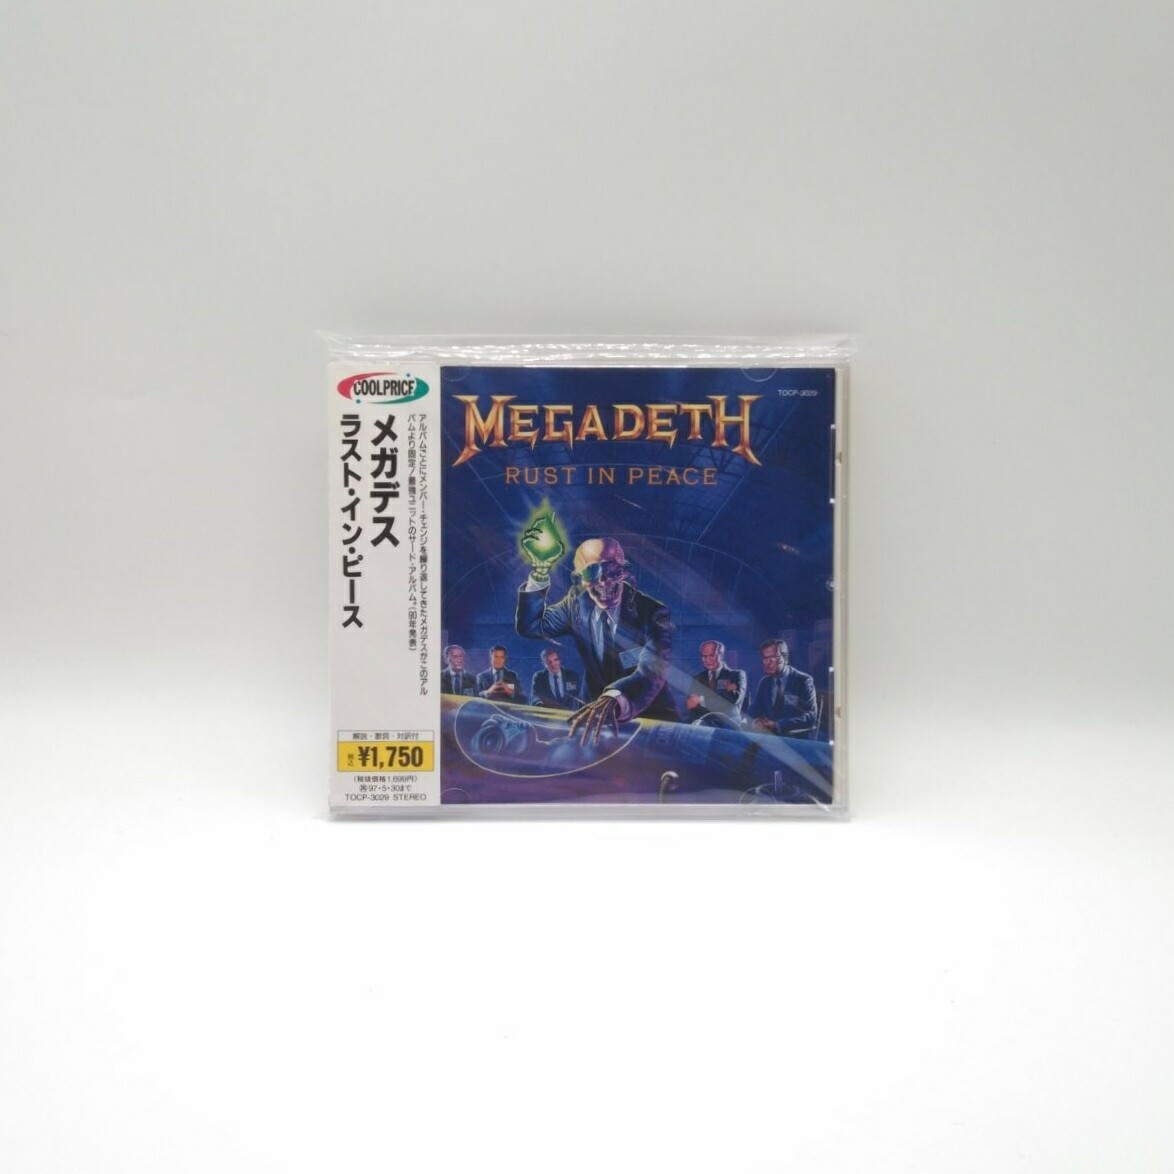 [USED] MEGADETH -RUST IN PEACE- CD (JAPAN PRESS)